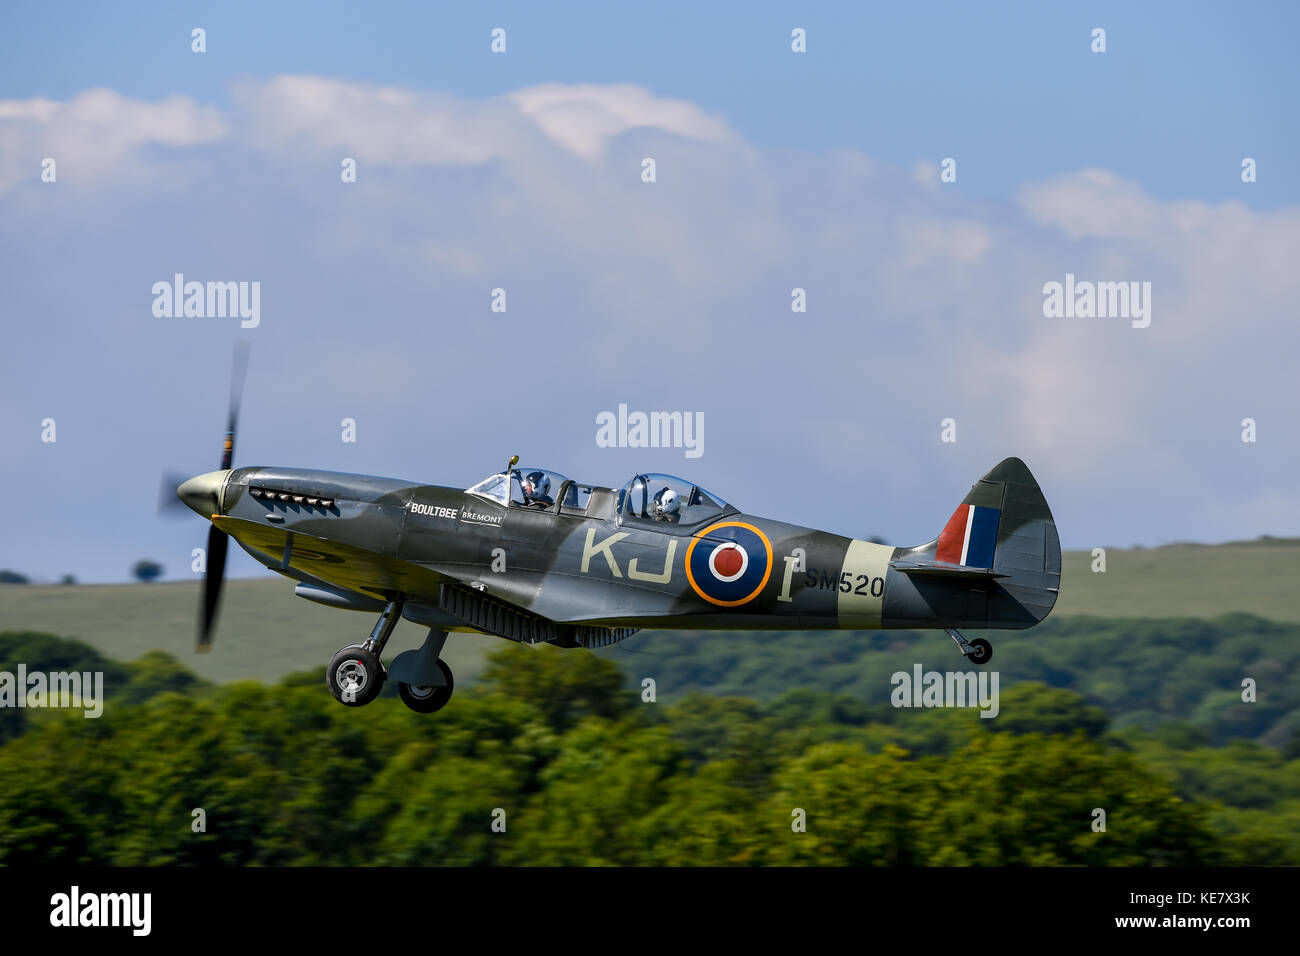 Two Seater Plane Stock Photos & Two Seater Plane Stock Images - Alamy